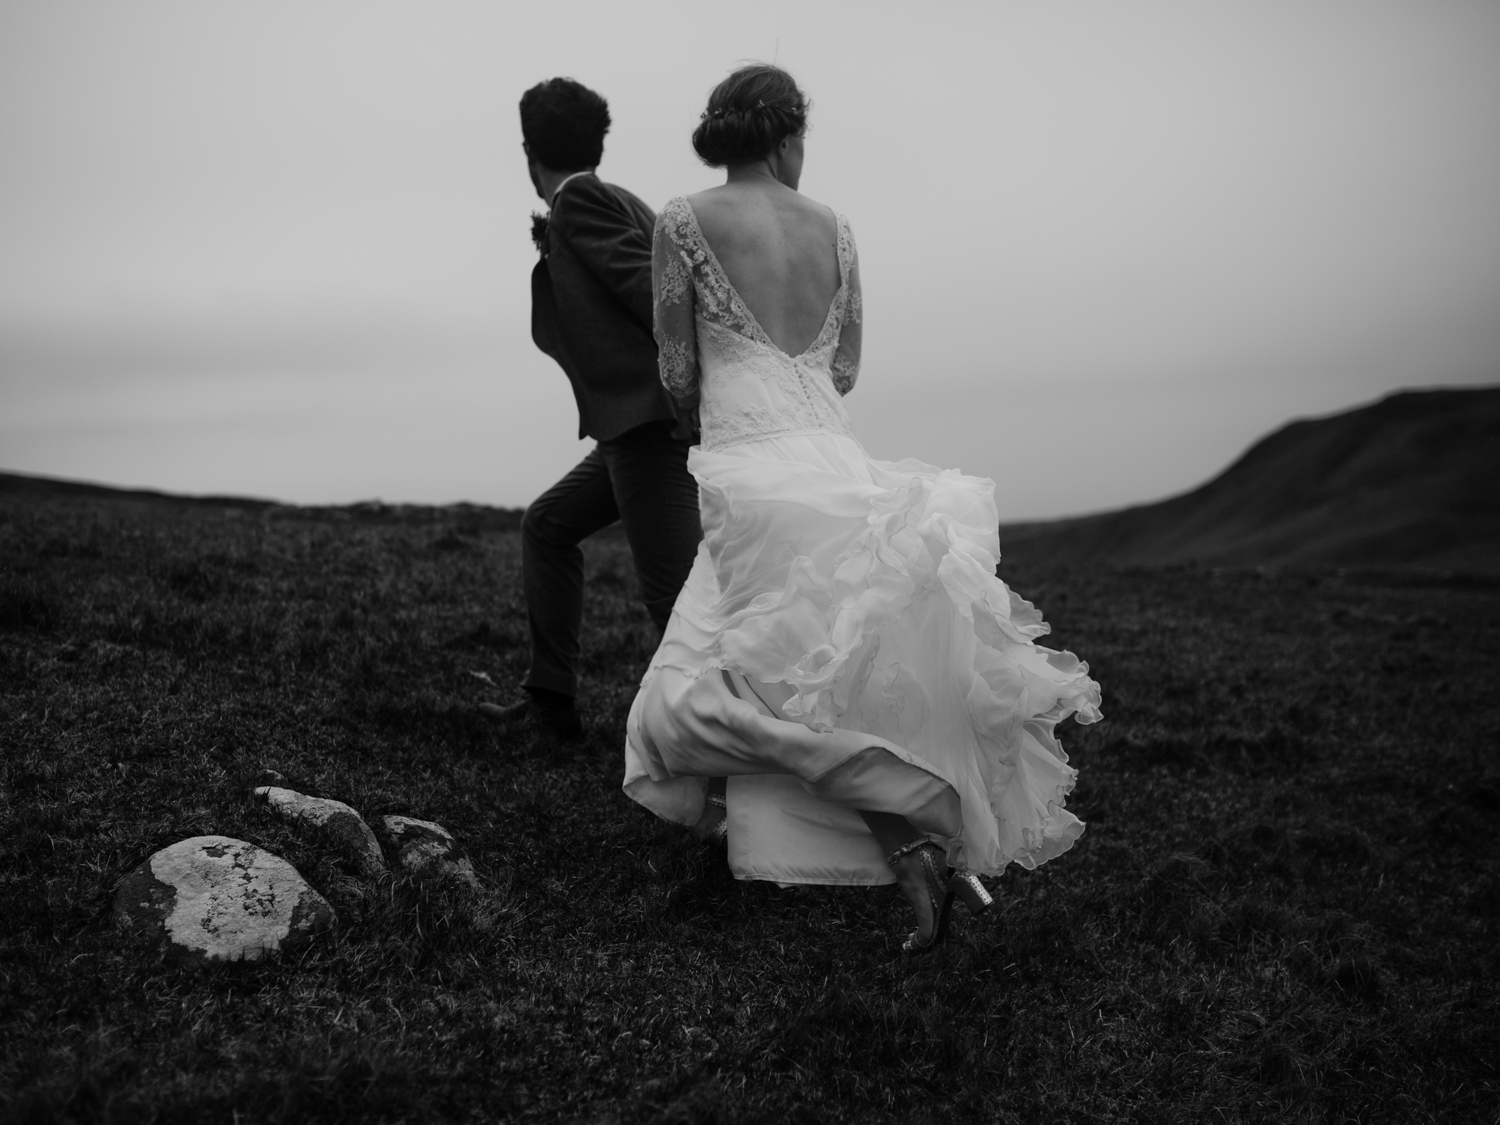 capyture-wedding-photographer-destination-nature-intimate-wedding-isle-of-skye-scotland-929